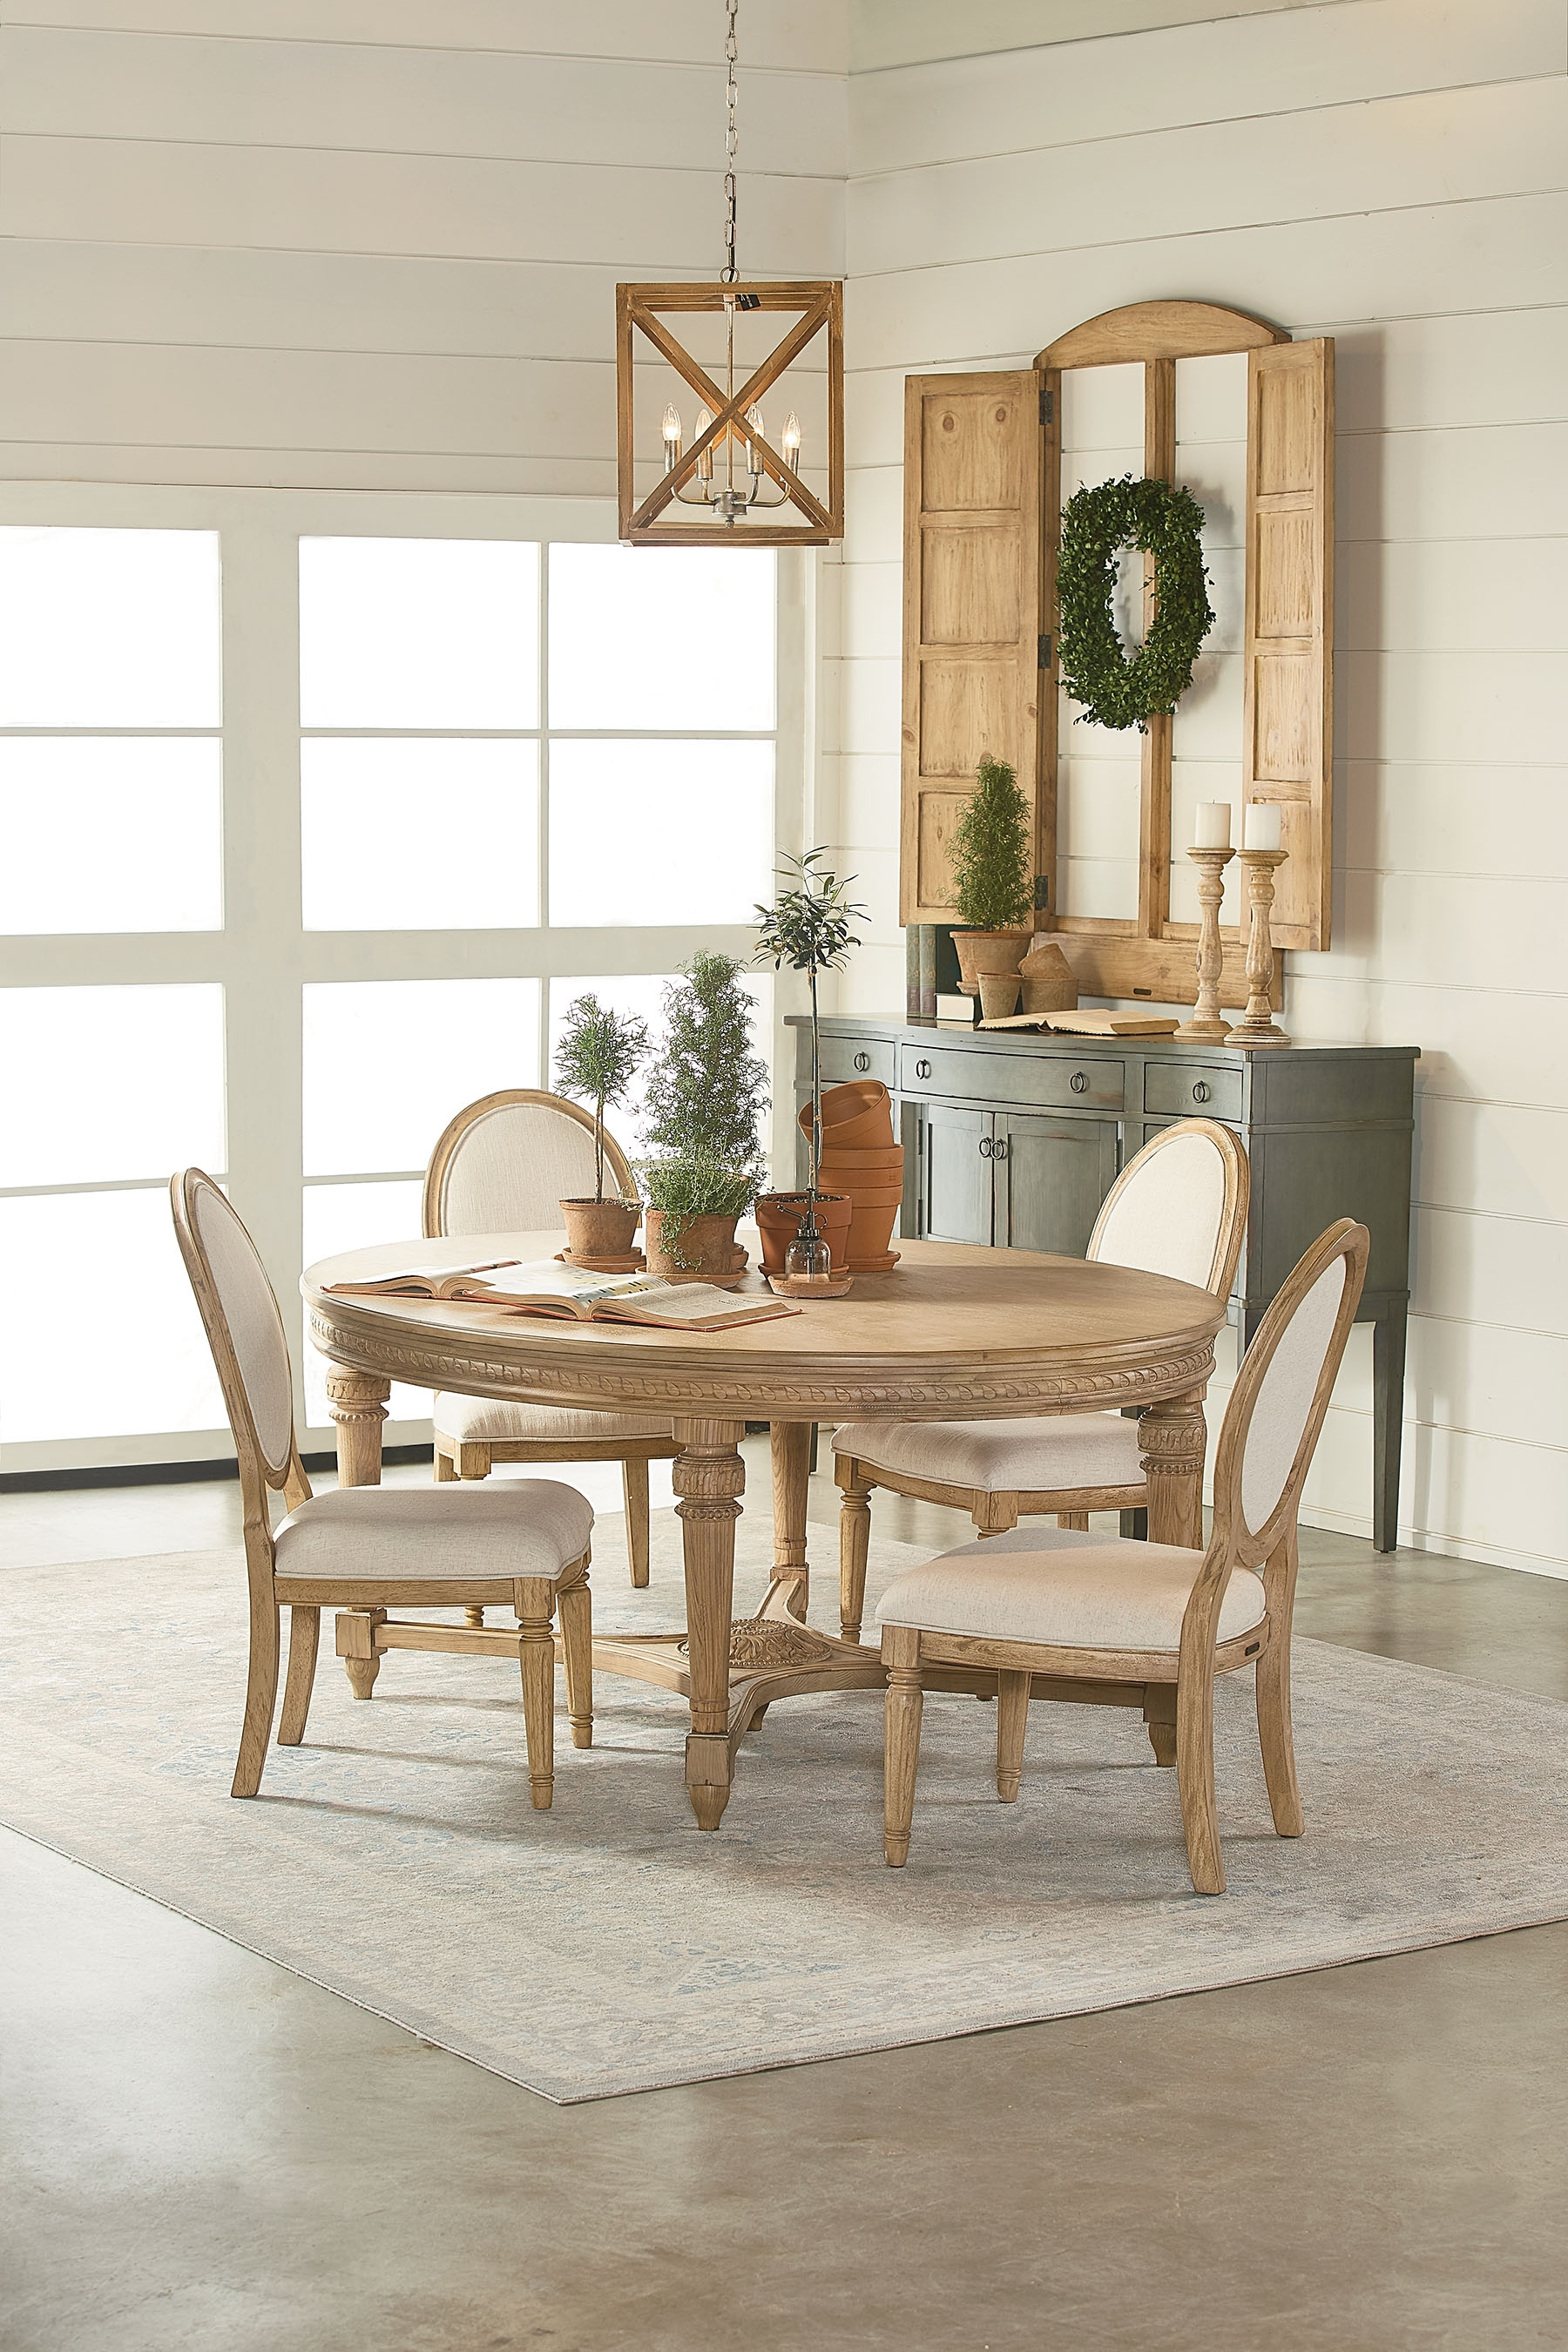 English Country Oval Dining Table – Magnolia Home In Best And Newest Magnolia Home English Country Oval Dining Tables (View 6 of 25)